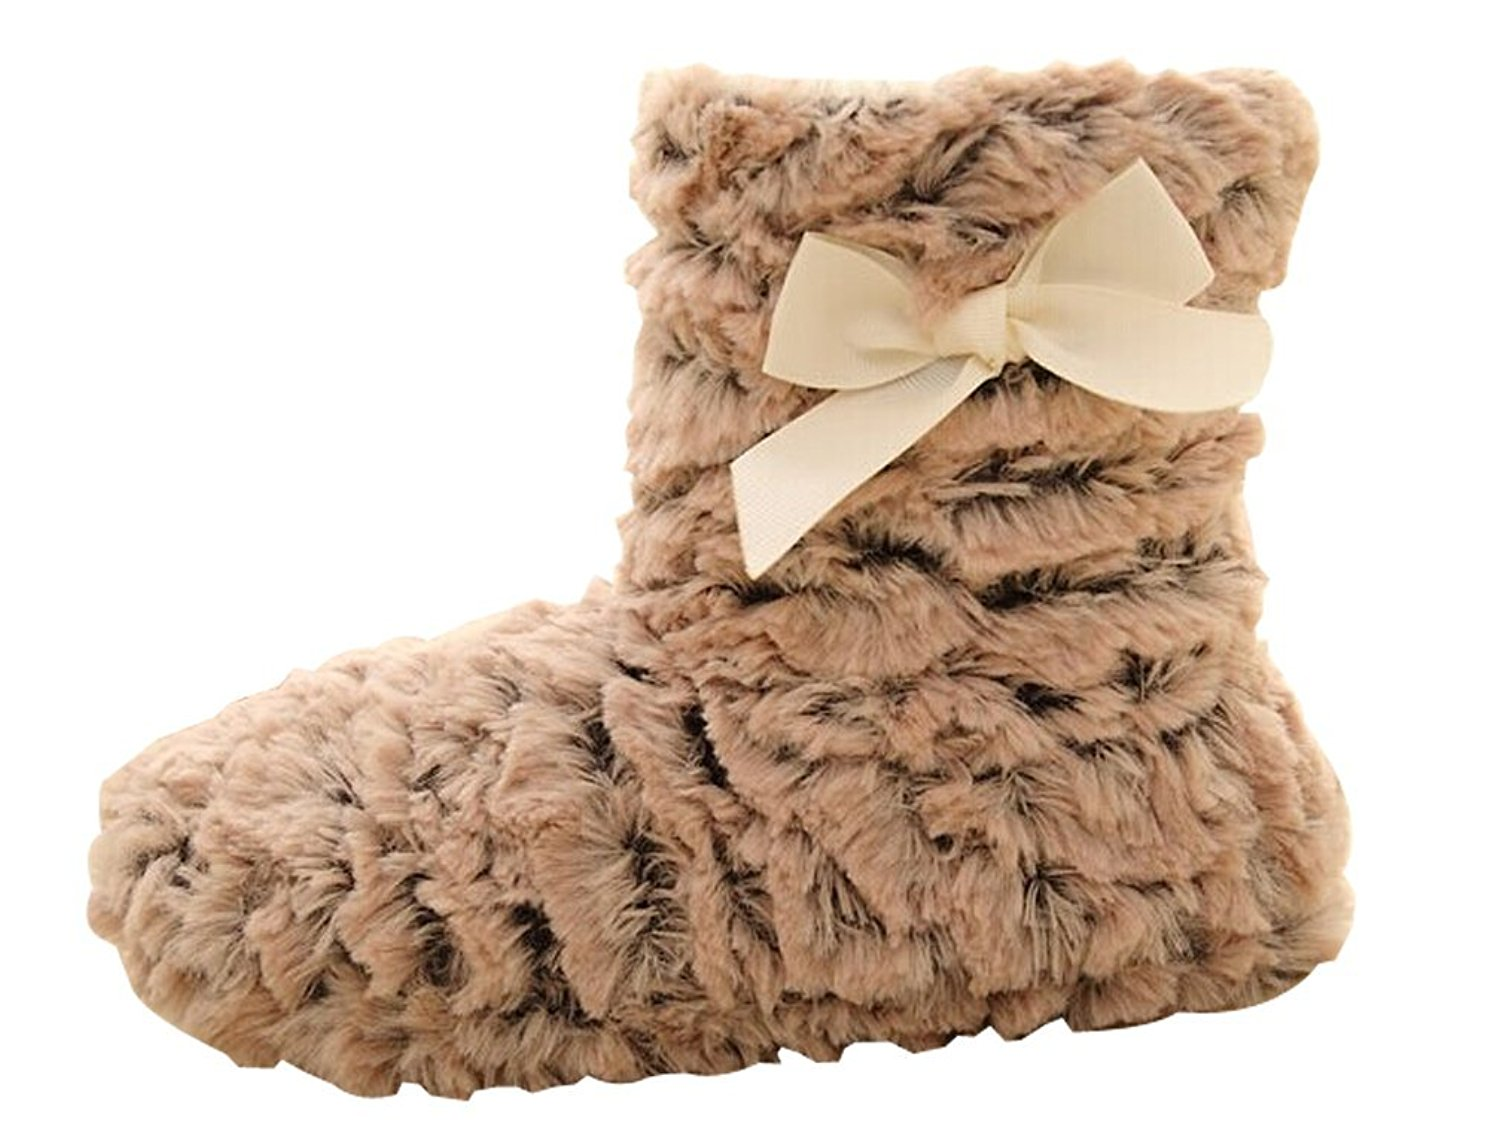 048c9f875eee1 Get Quotations · Cattior Womens Fleece Soft Comfy Slipper Boots Fuzzy  Slippers